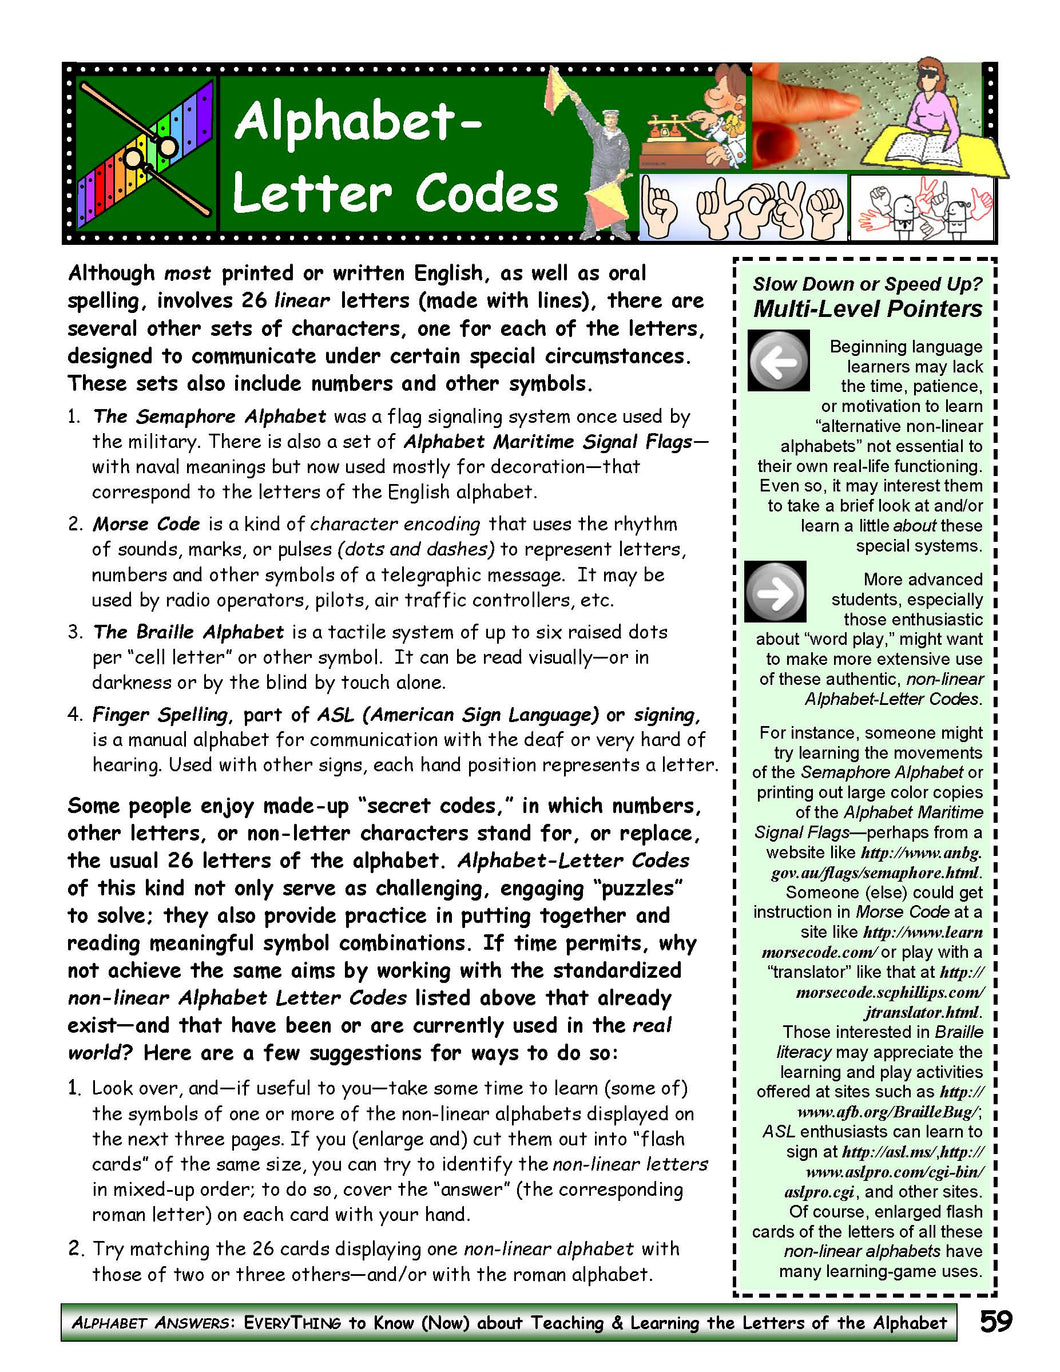 A-11: Use Alphabet-Letter Codes